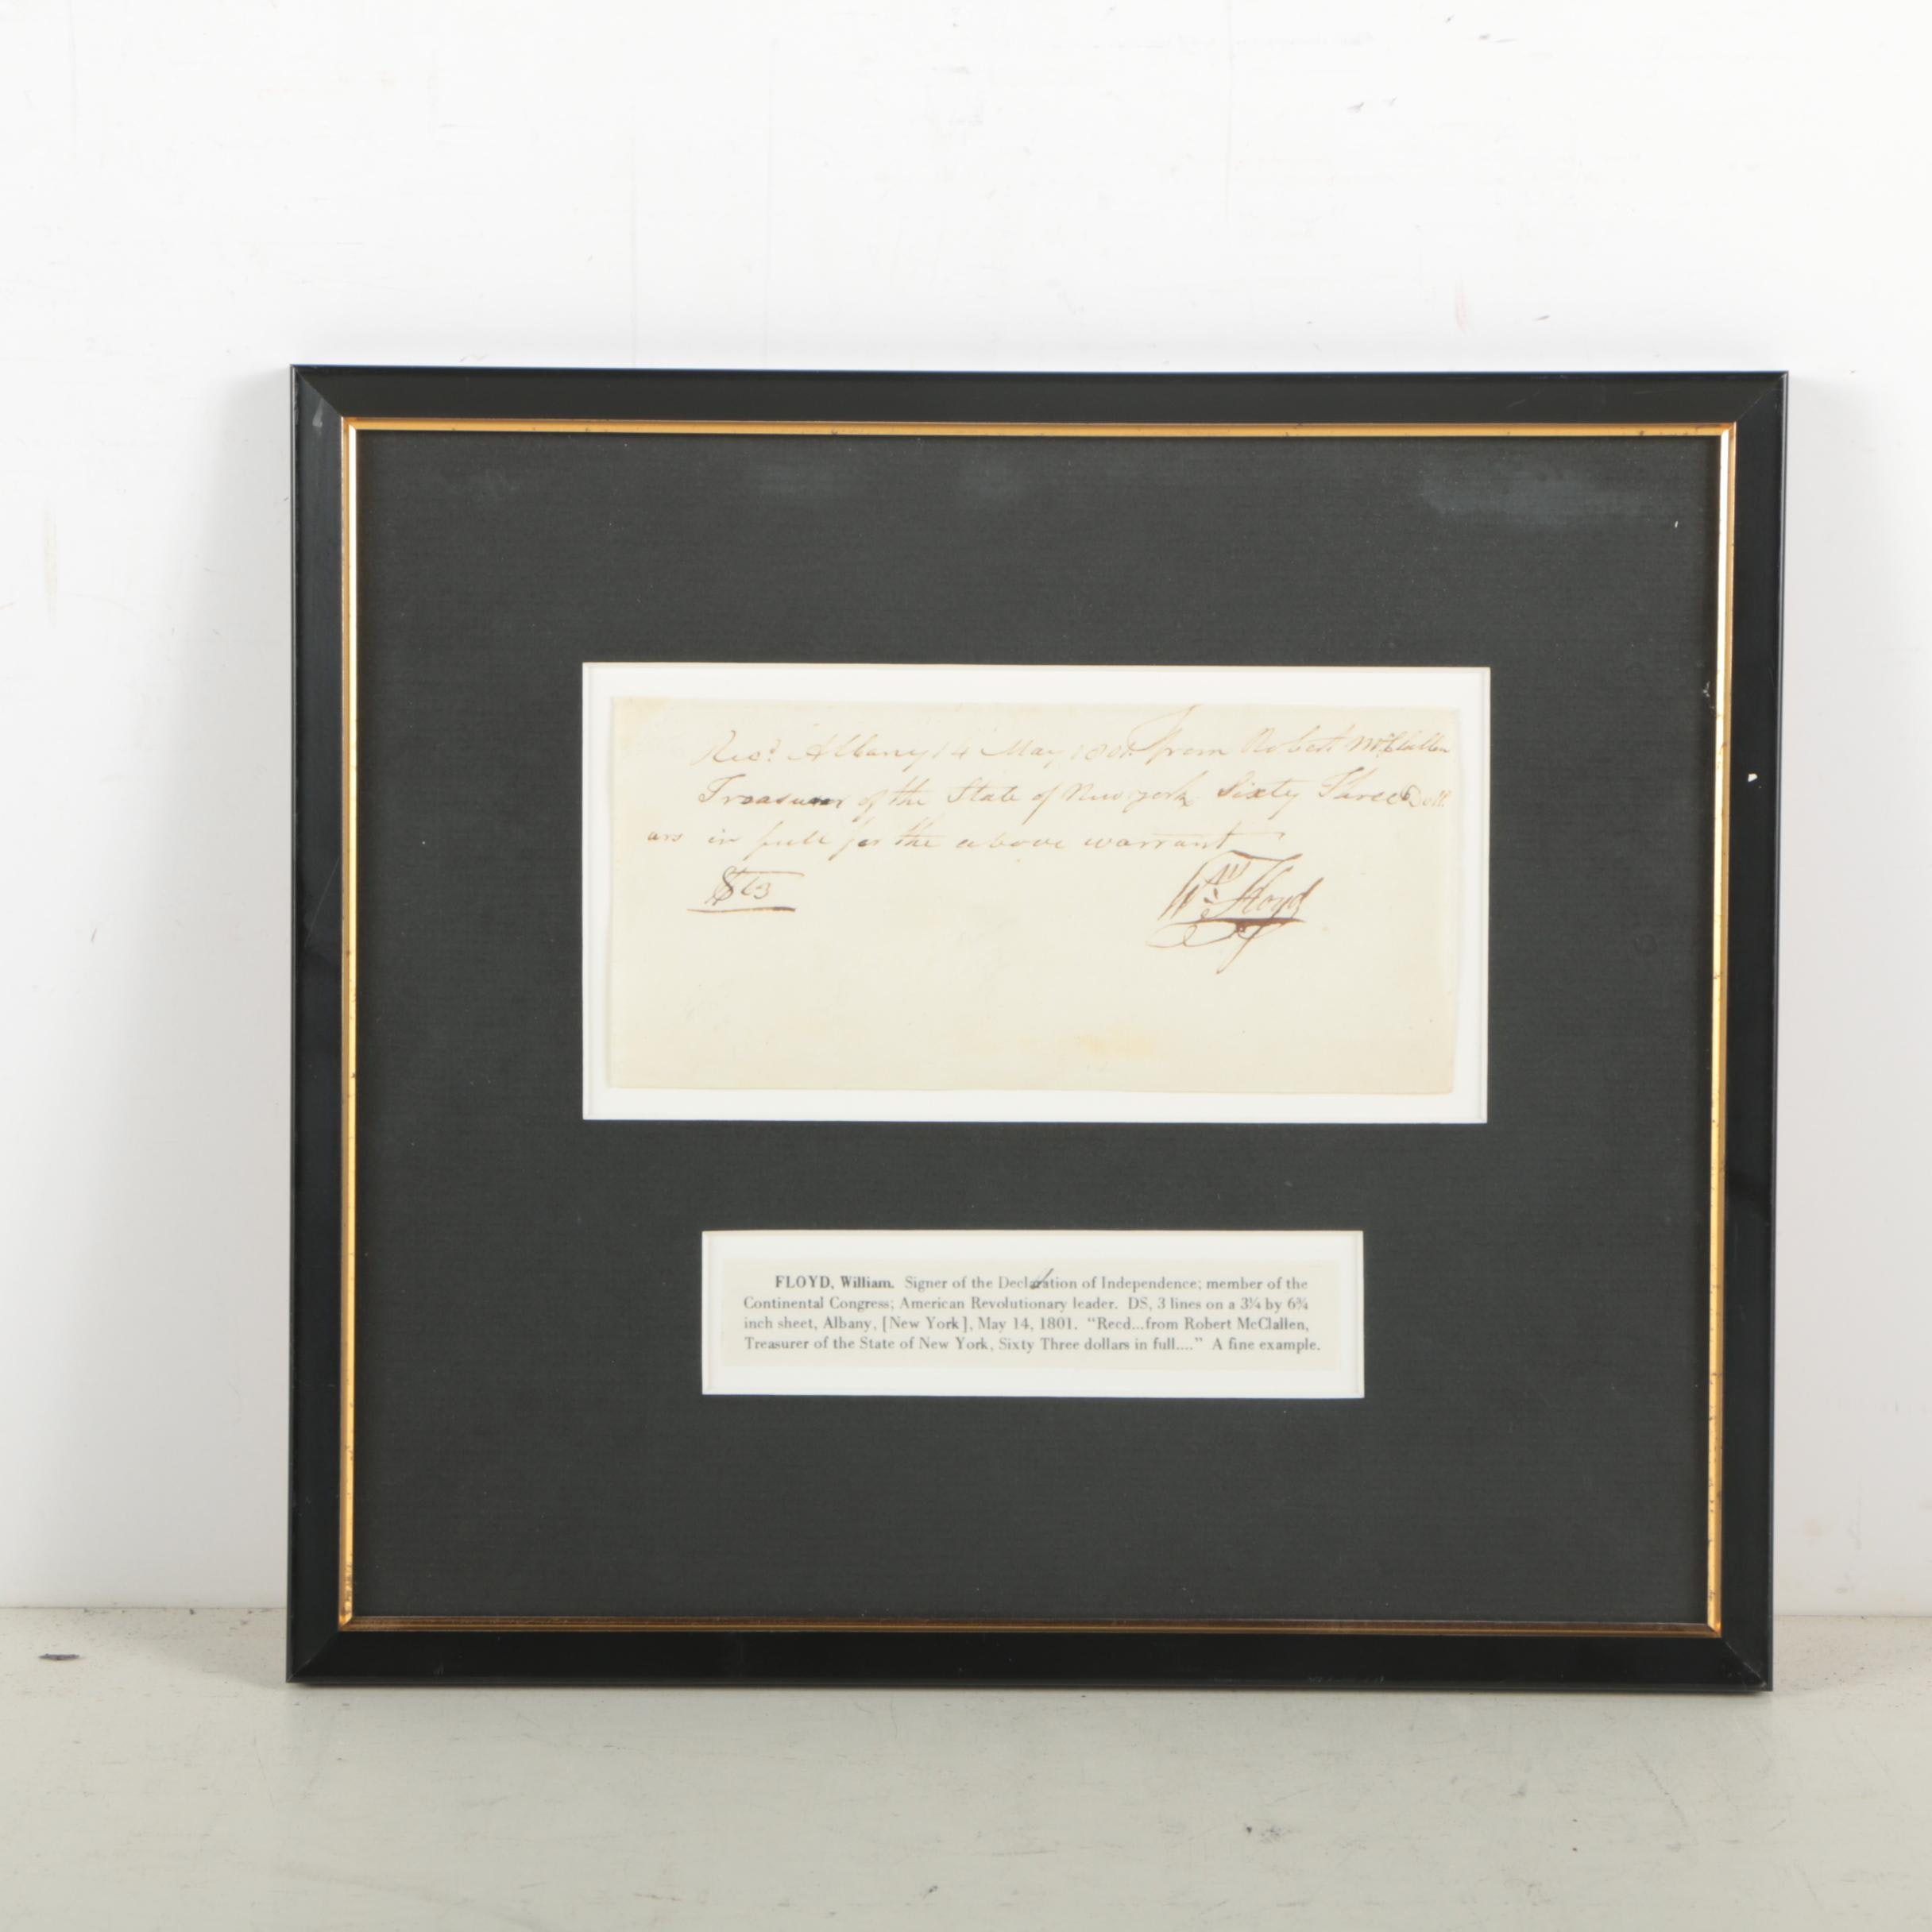 William Floyd Document Signed May 14, 1801